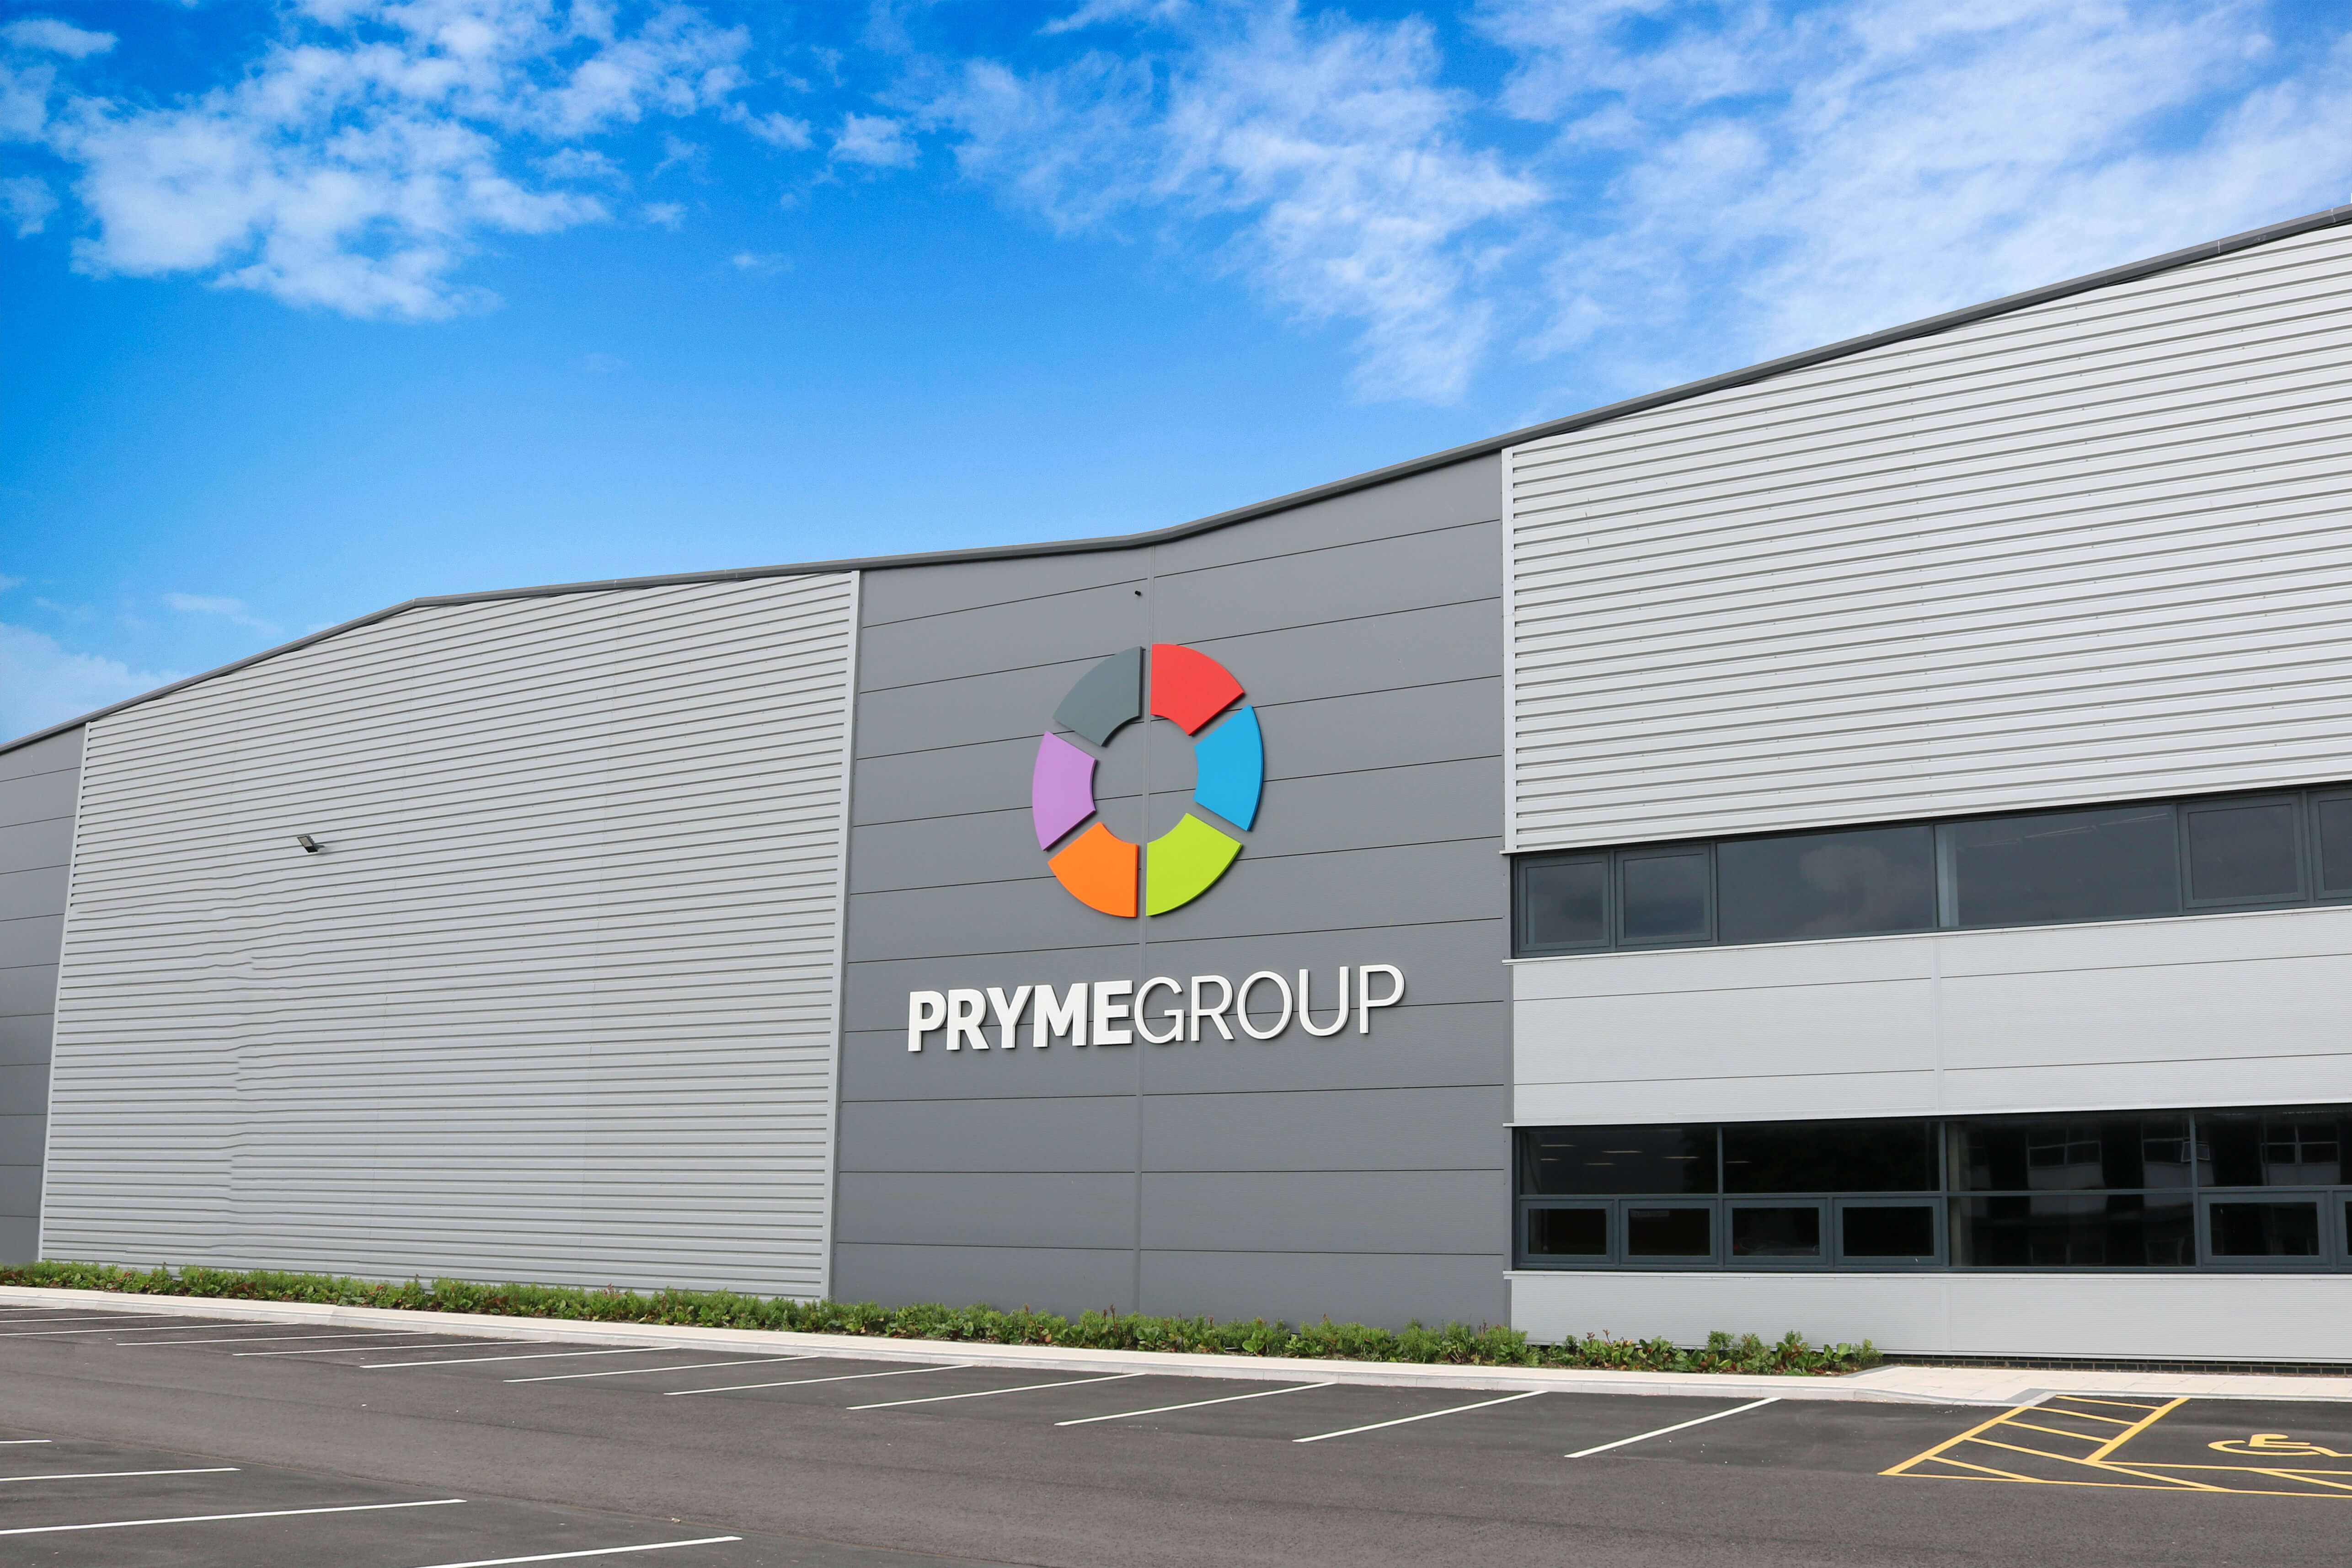 Pryme Group image